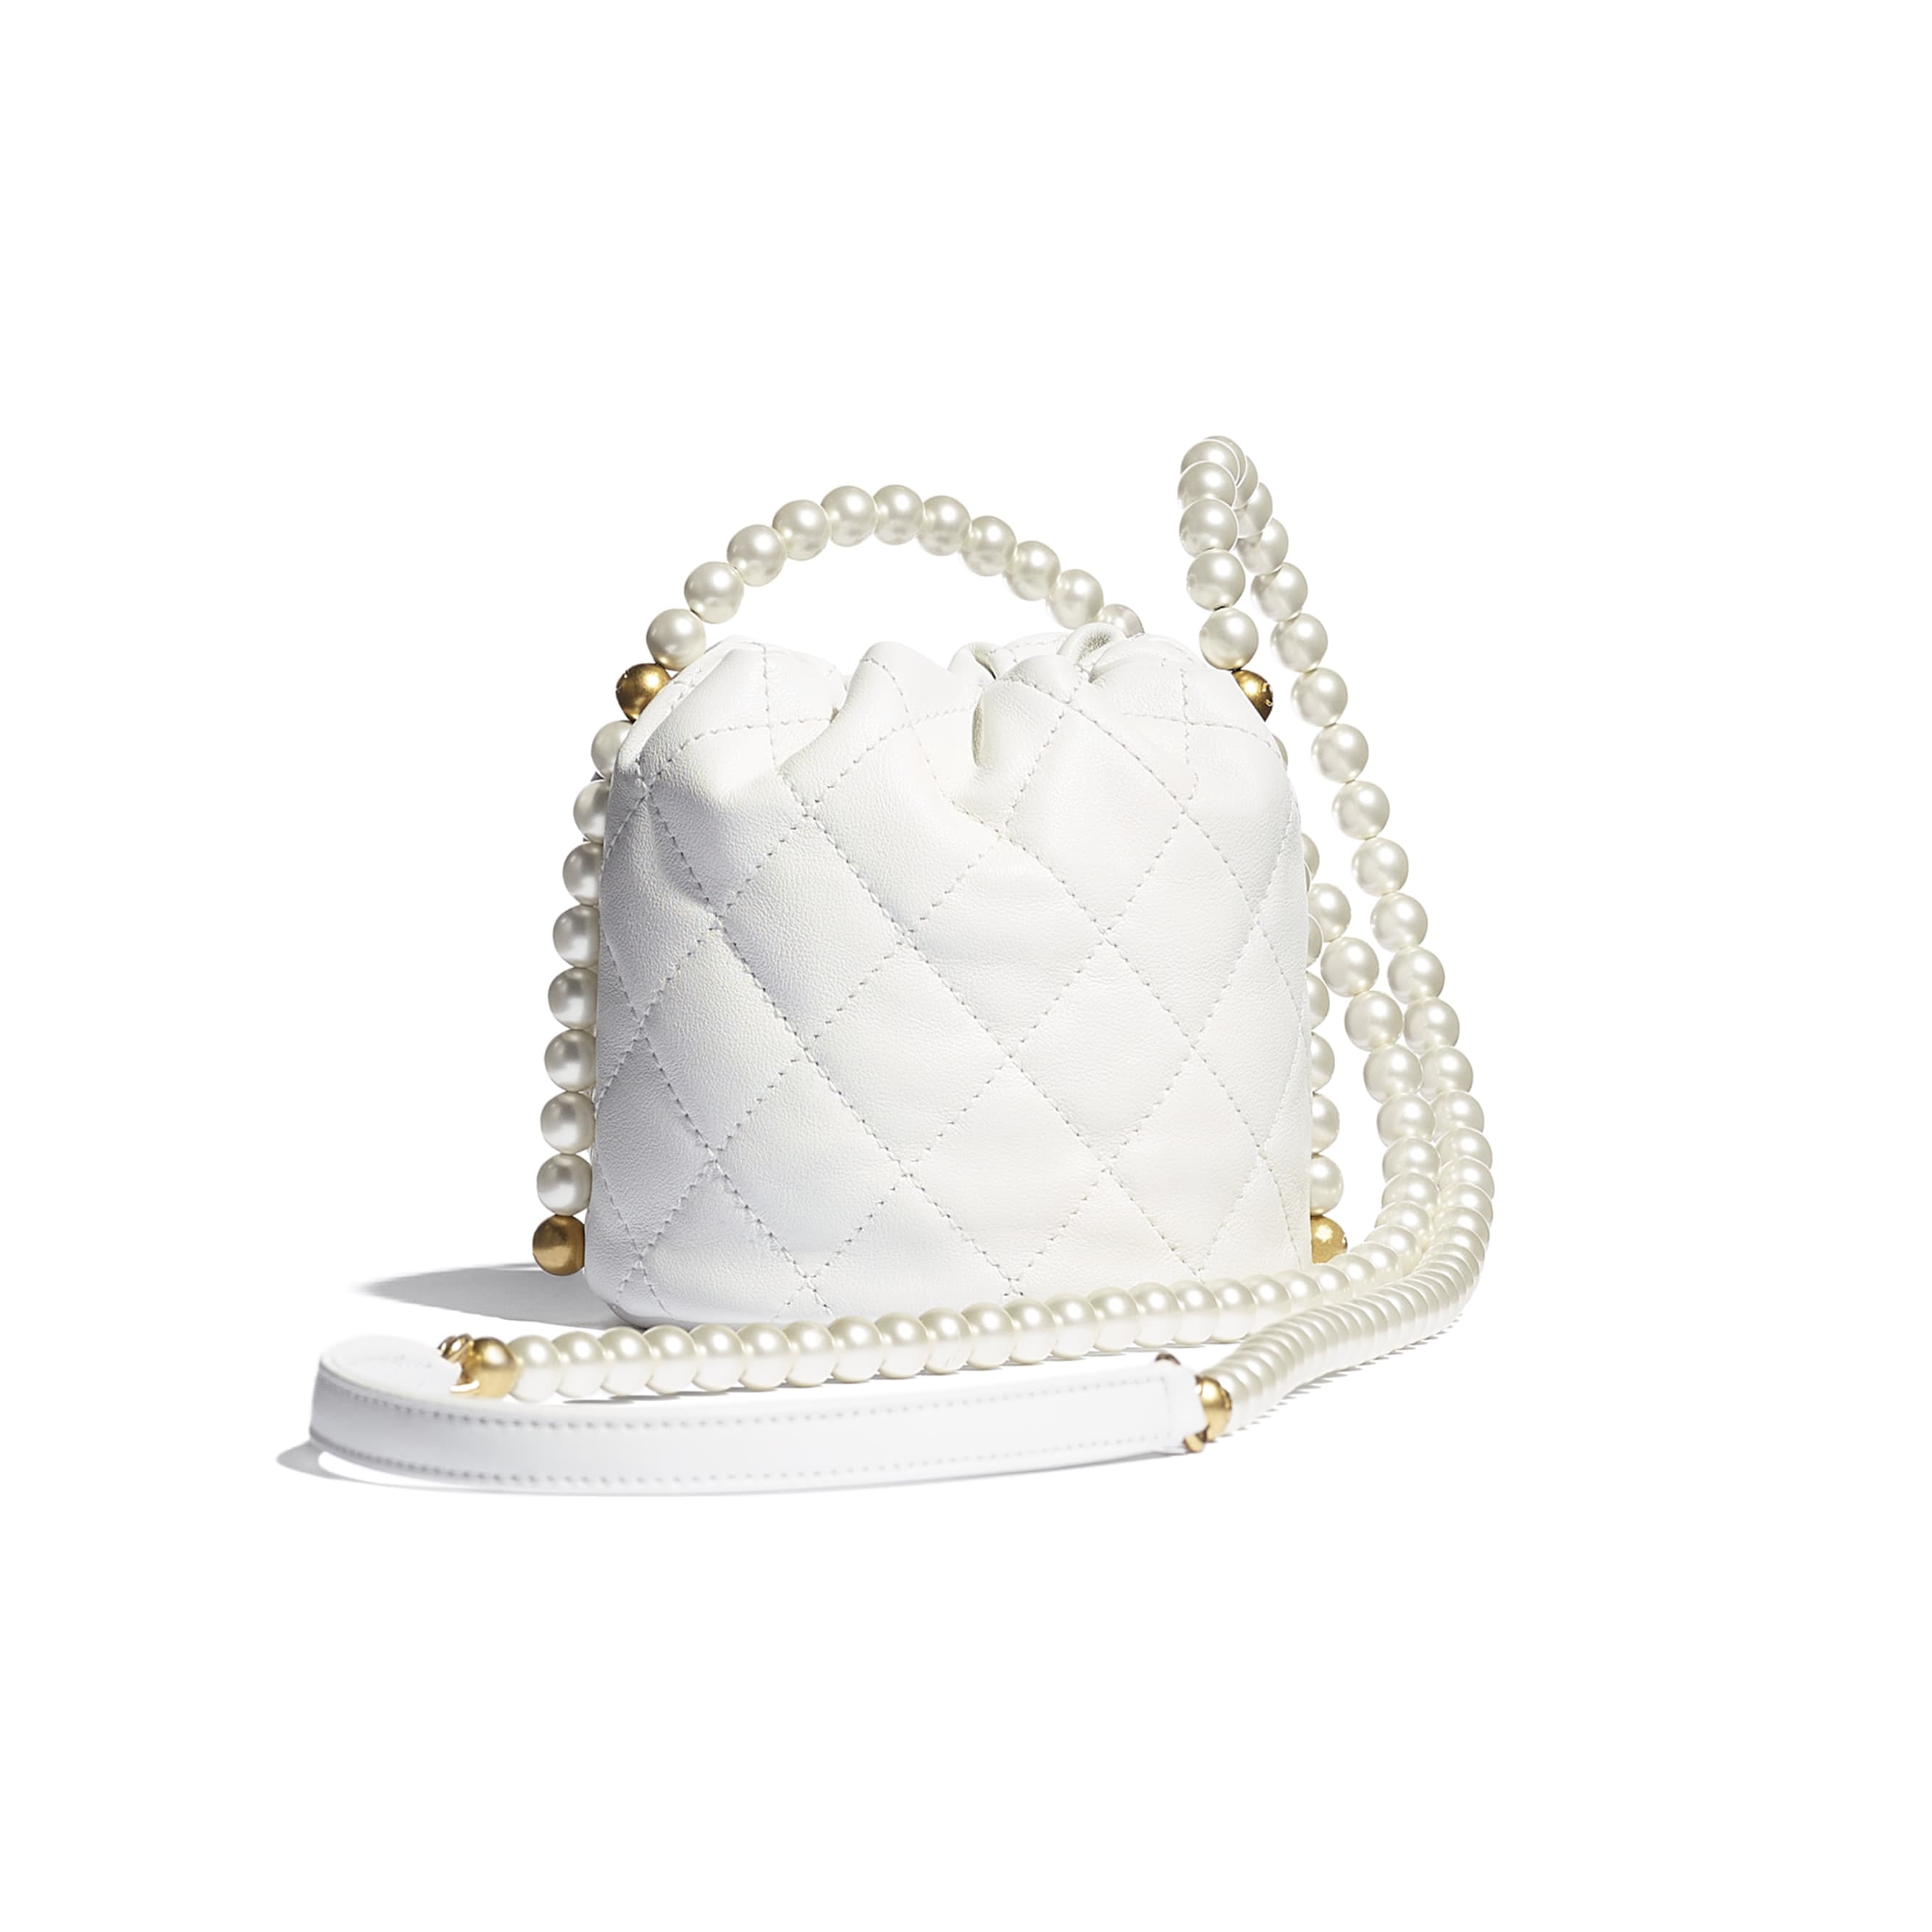 Mini Drawstring Bag - White - Calfskin, Imitation Pearls & Gold-Tone Metal - CHANEL - Alternative view - see standard sized version